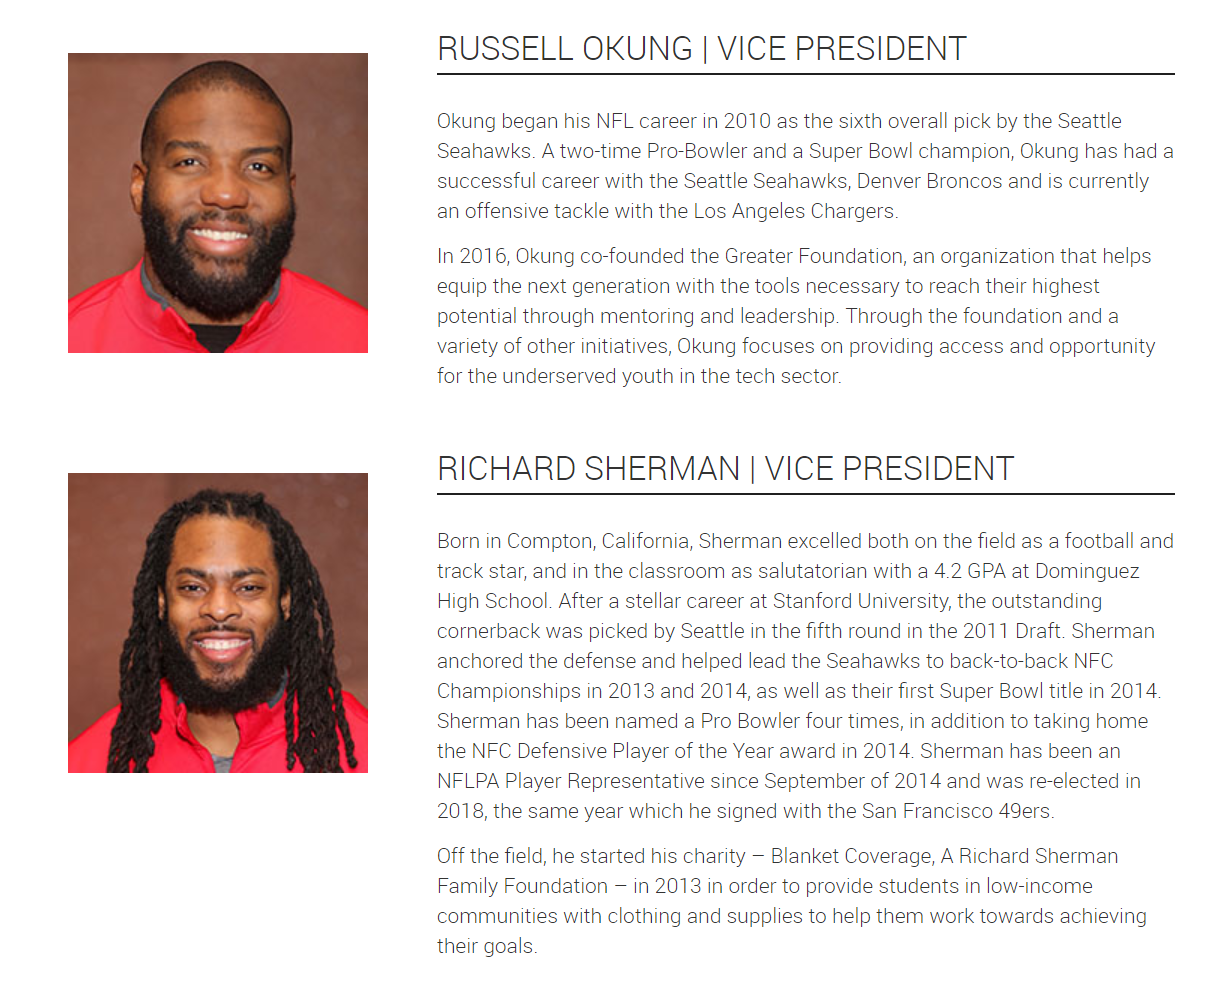 NFL Players Association - NFLPA Officers